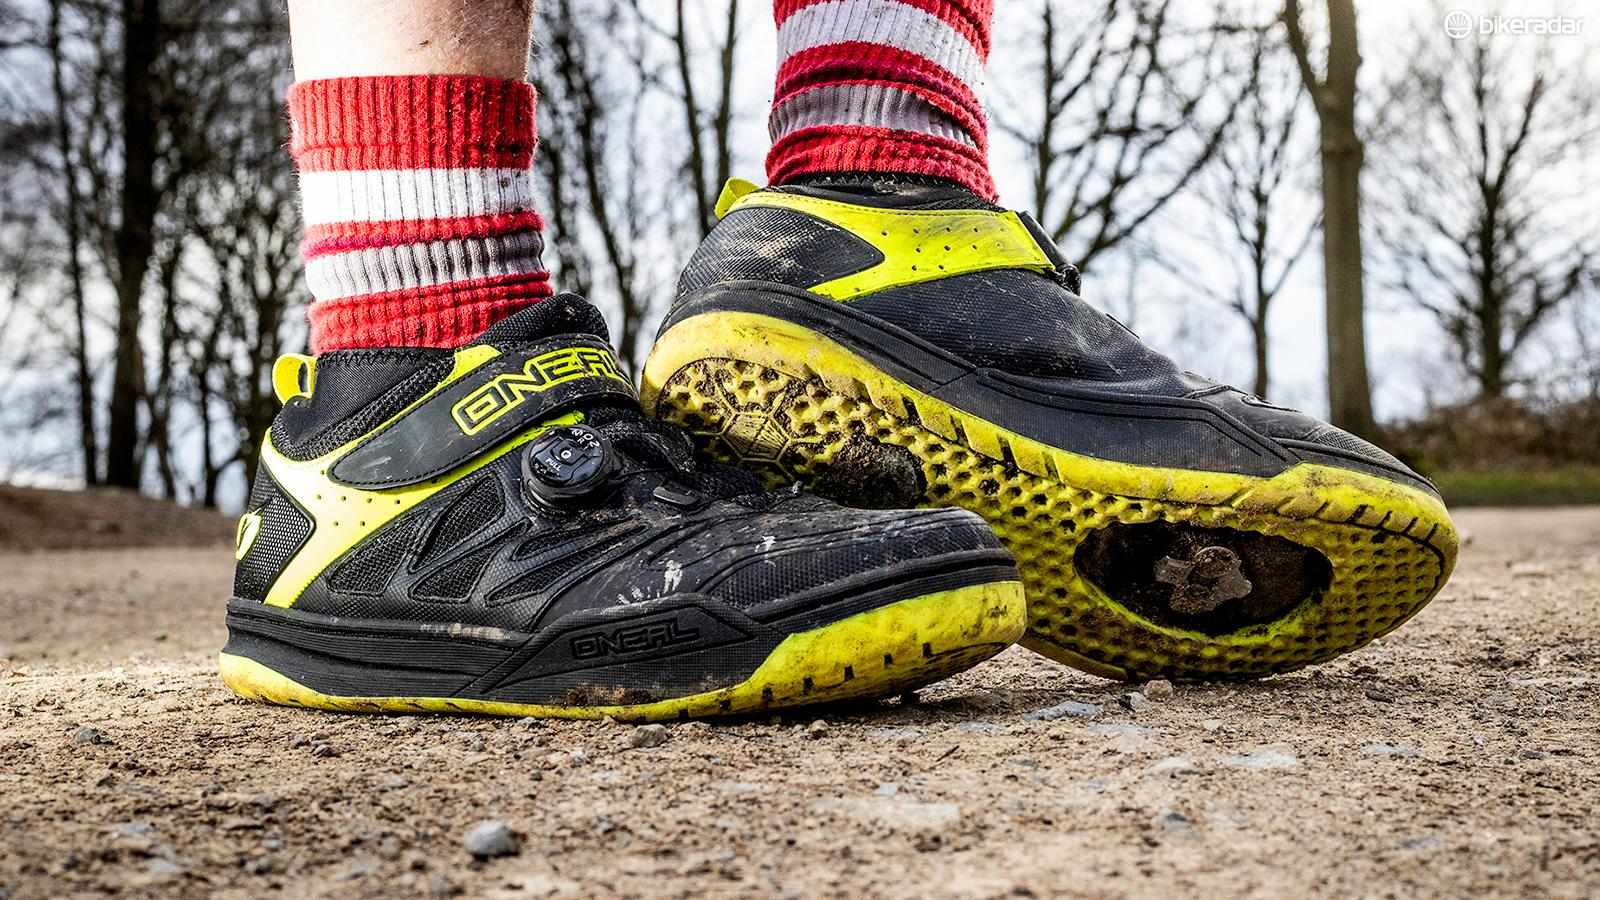 O'Neal's Session clipless shoes